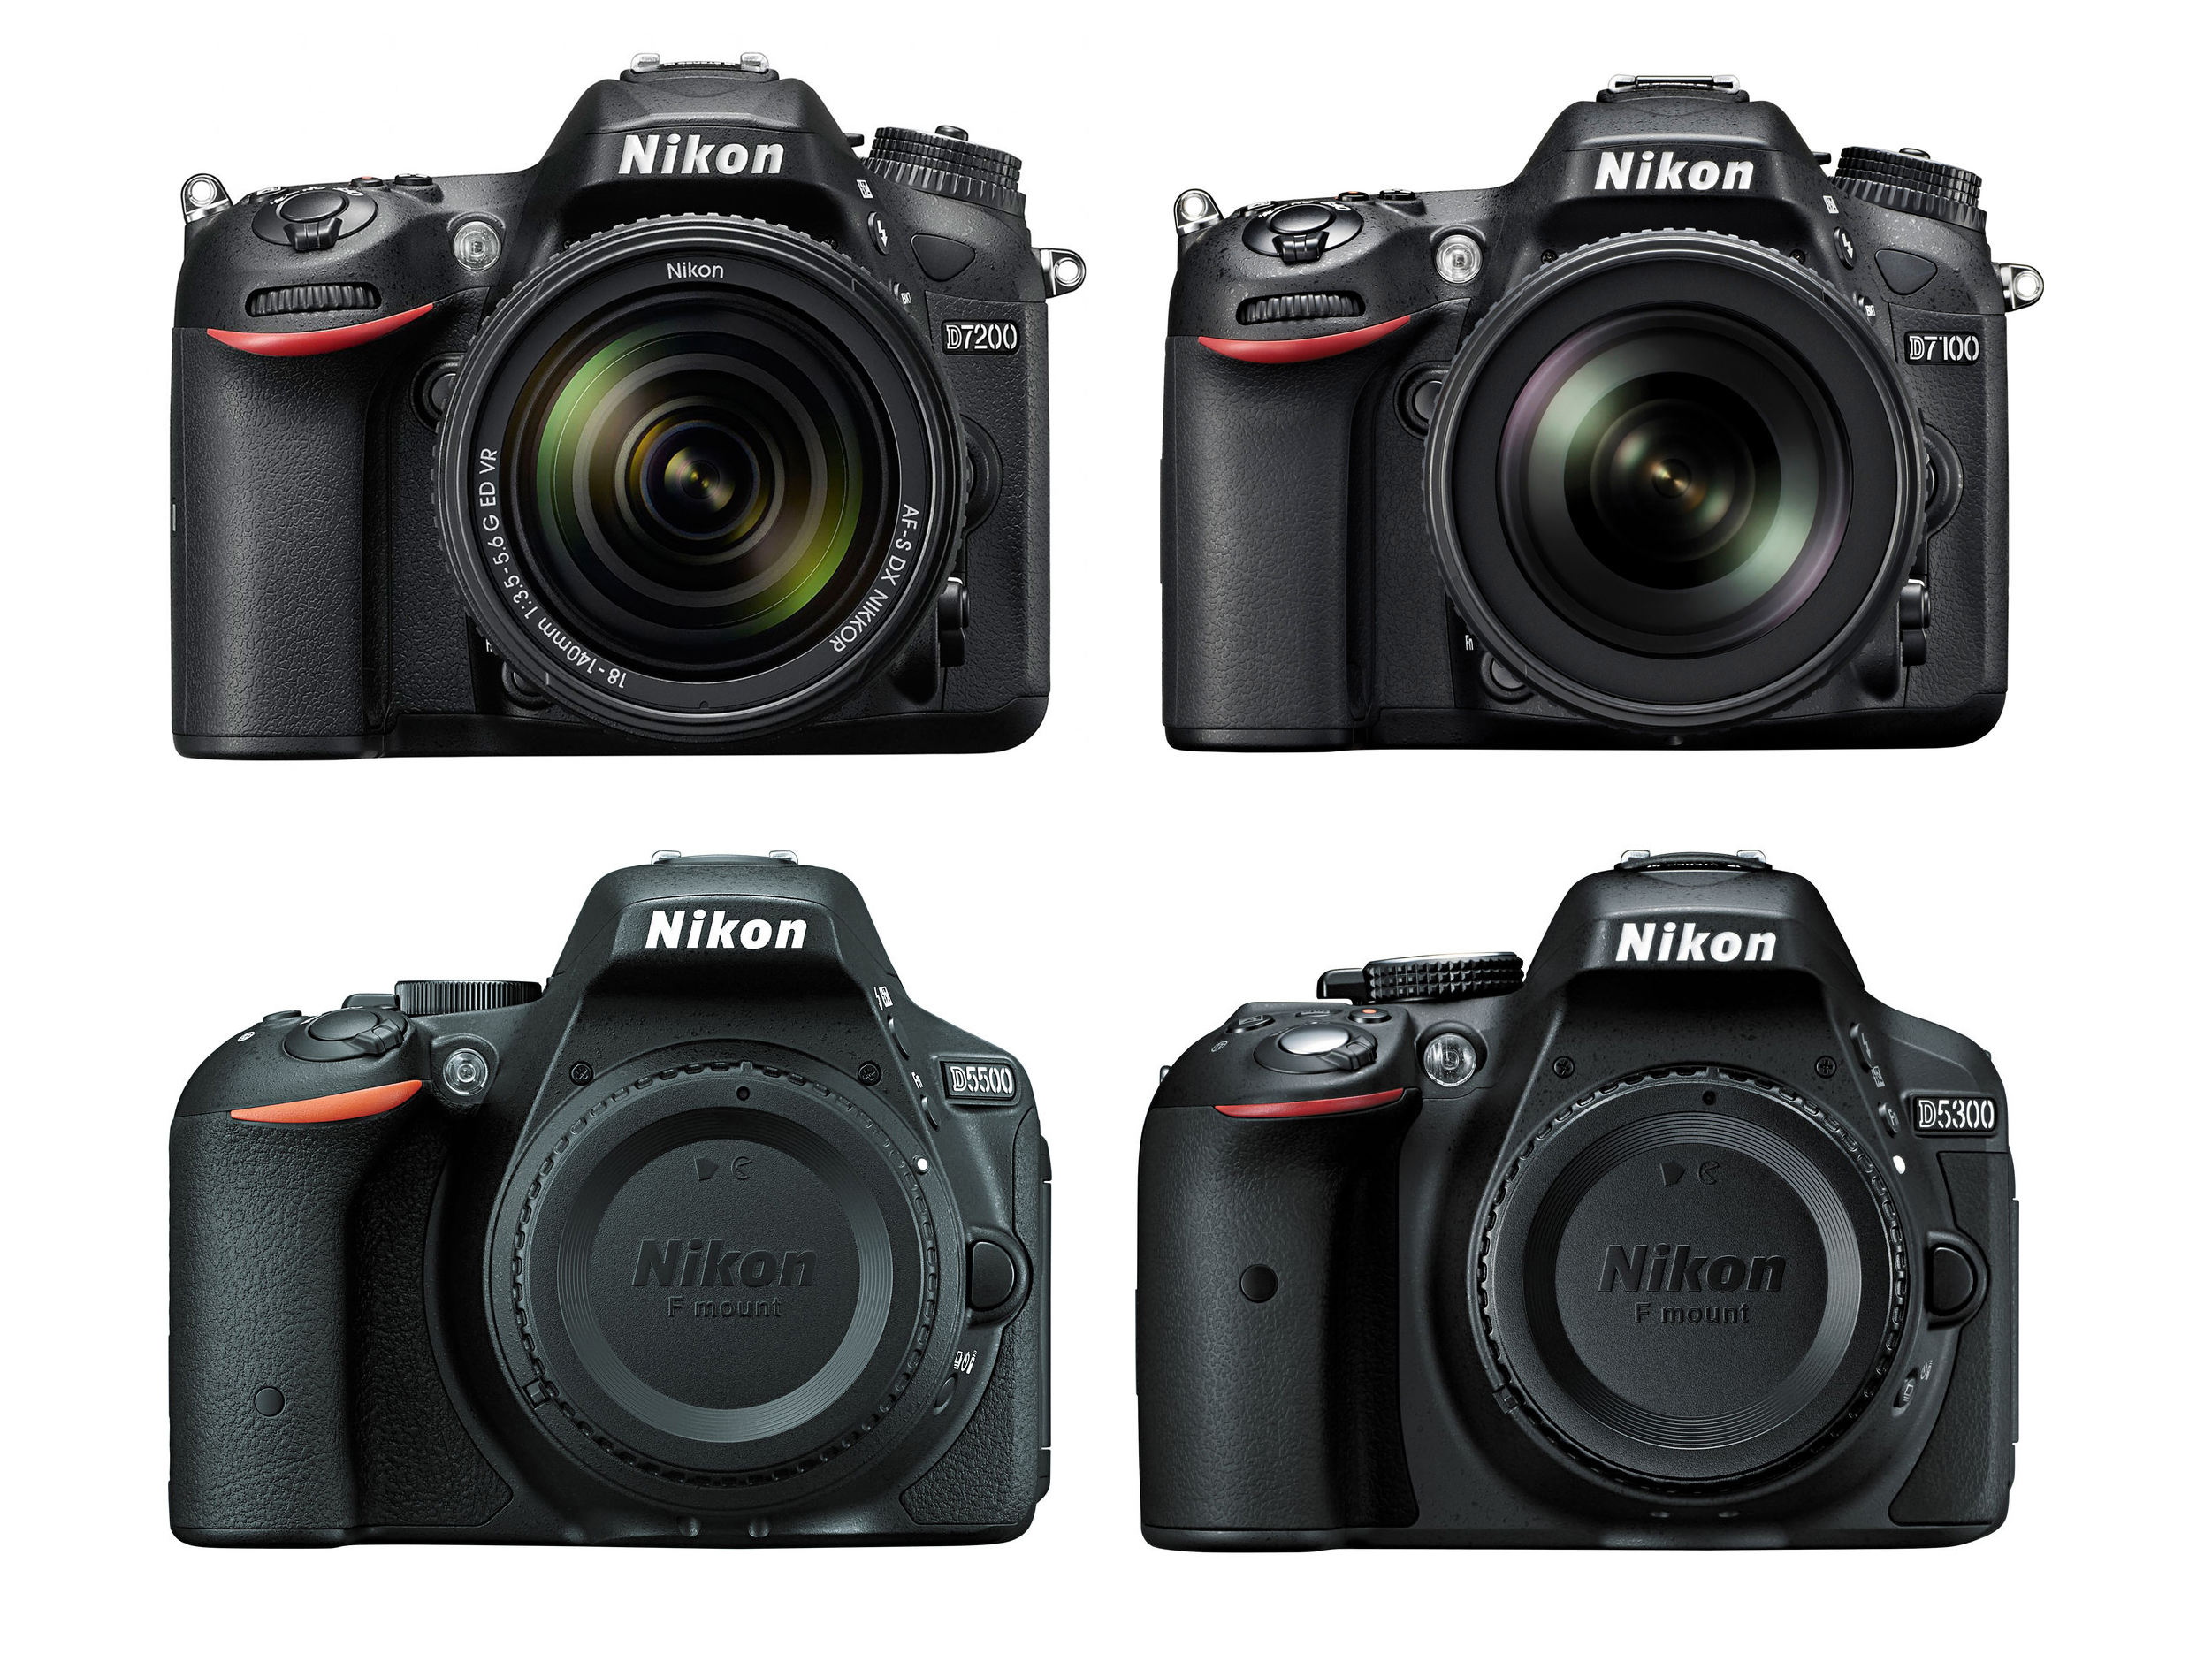 Nikon D5500 Vs D7200 >> Nikon D7100 – Camera News at Cameraegg